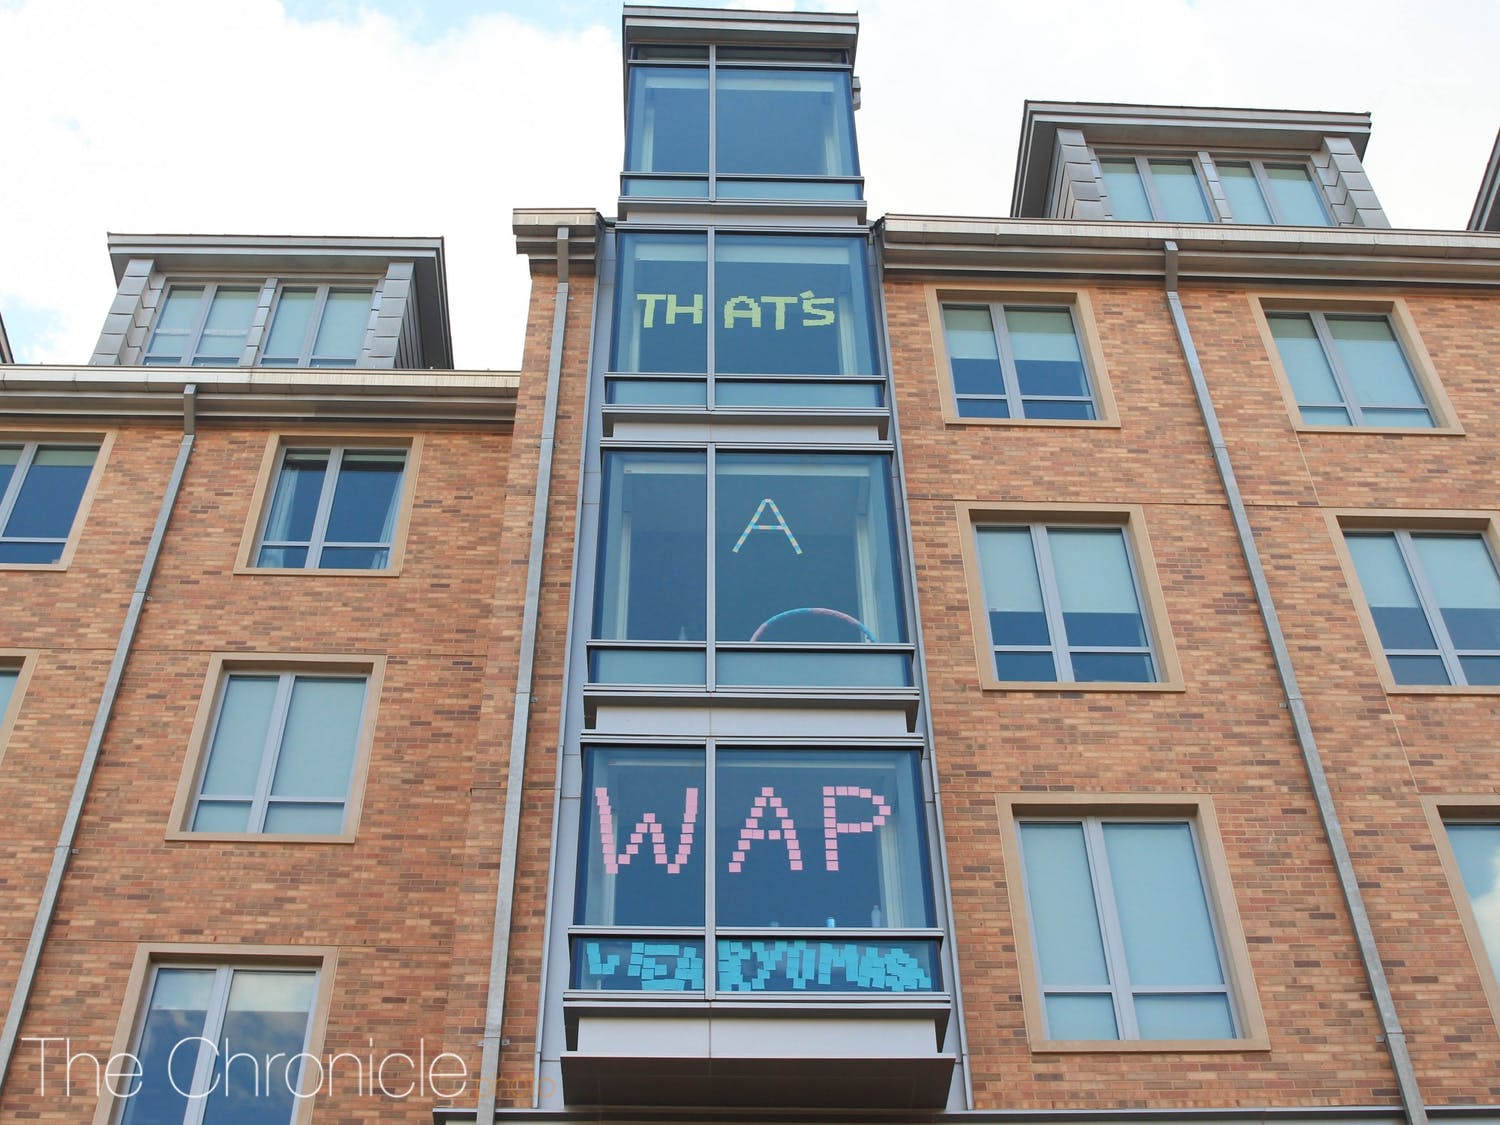 Students in Hollows Quad have put up window signs during the pandemic, but Duke has rules in place regarding what students can display in their windows.